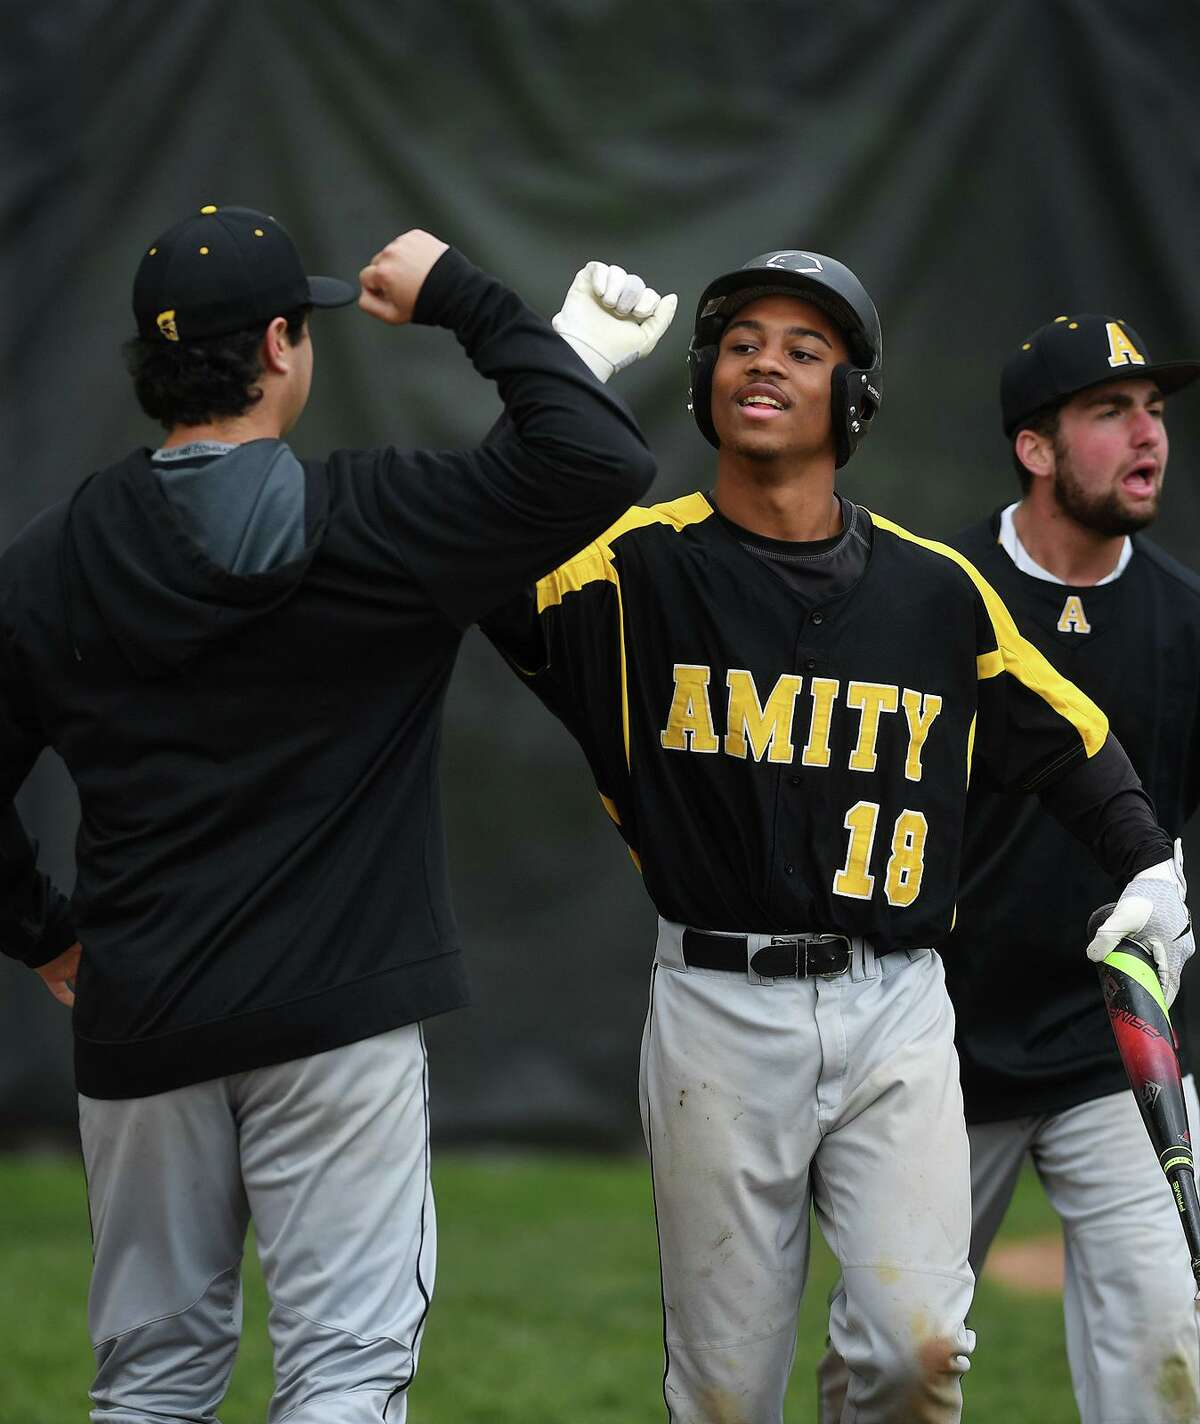 """Amity's Julian """"Juju"""" Stevens high fives a teammate after scoring a run against Hand in May, 2019."""